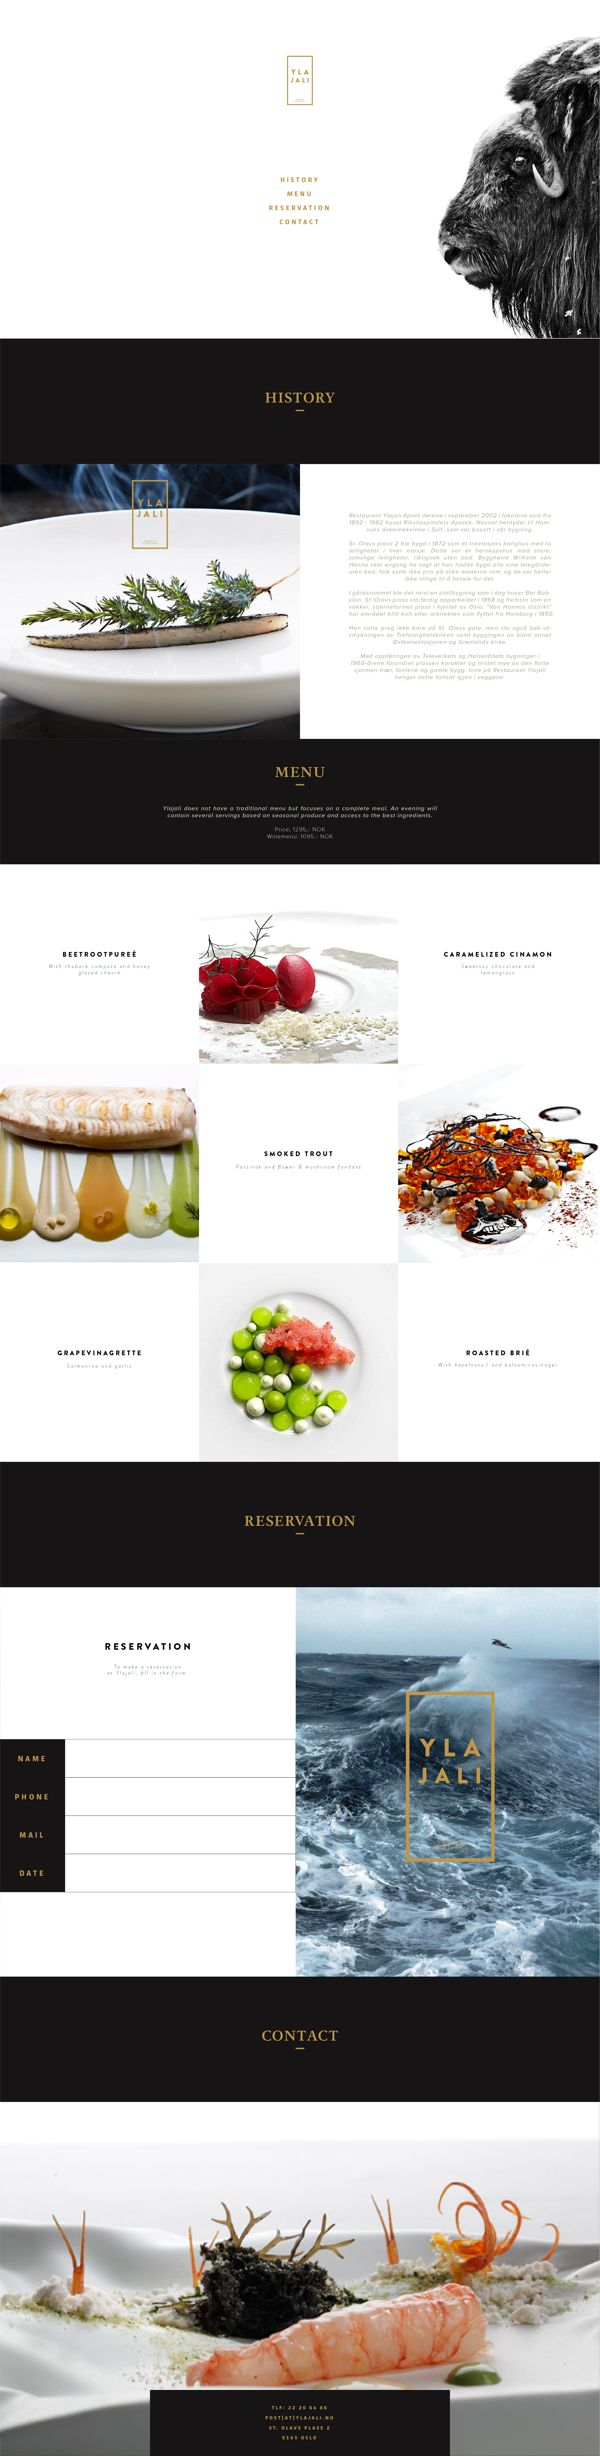 #Ylajali Website #food #website #webdesign #ux #benchmark #design #web